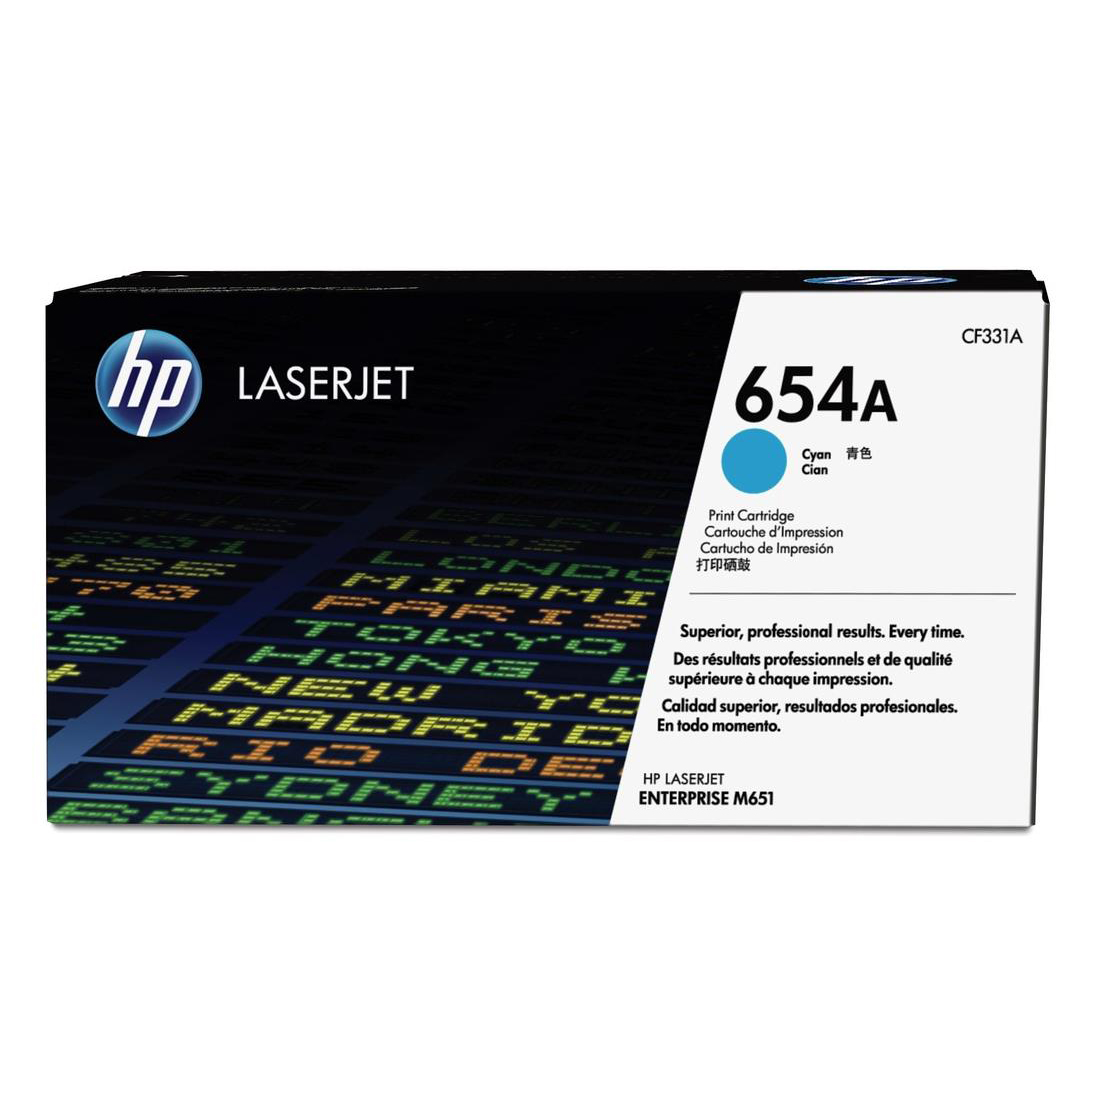 HP 654A Yield 15000 Pages Cyan Original LaserJet Toner Cartridge Ref CF331A